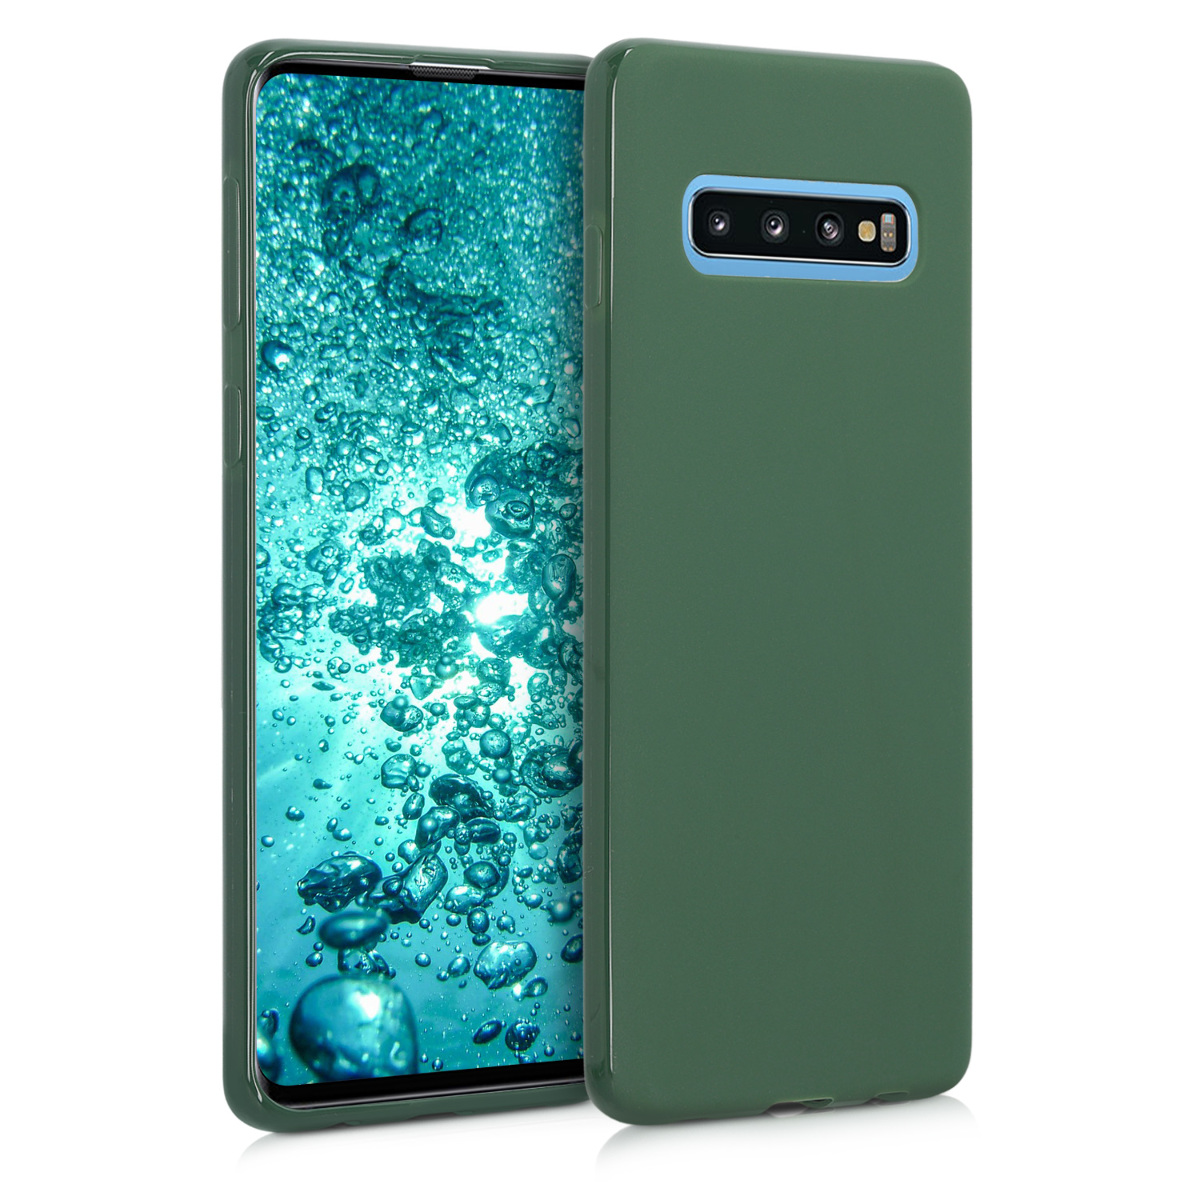 KW Θήκη Σιλικόνης Samsung Galaxy S10 - Soft Flexible Shock Absorbent - Dark Green Matte (47447.118)